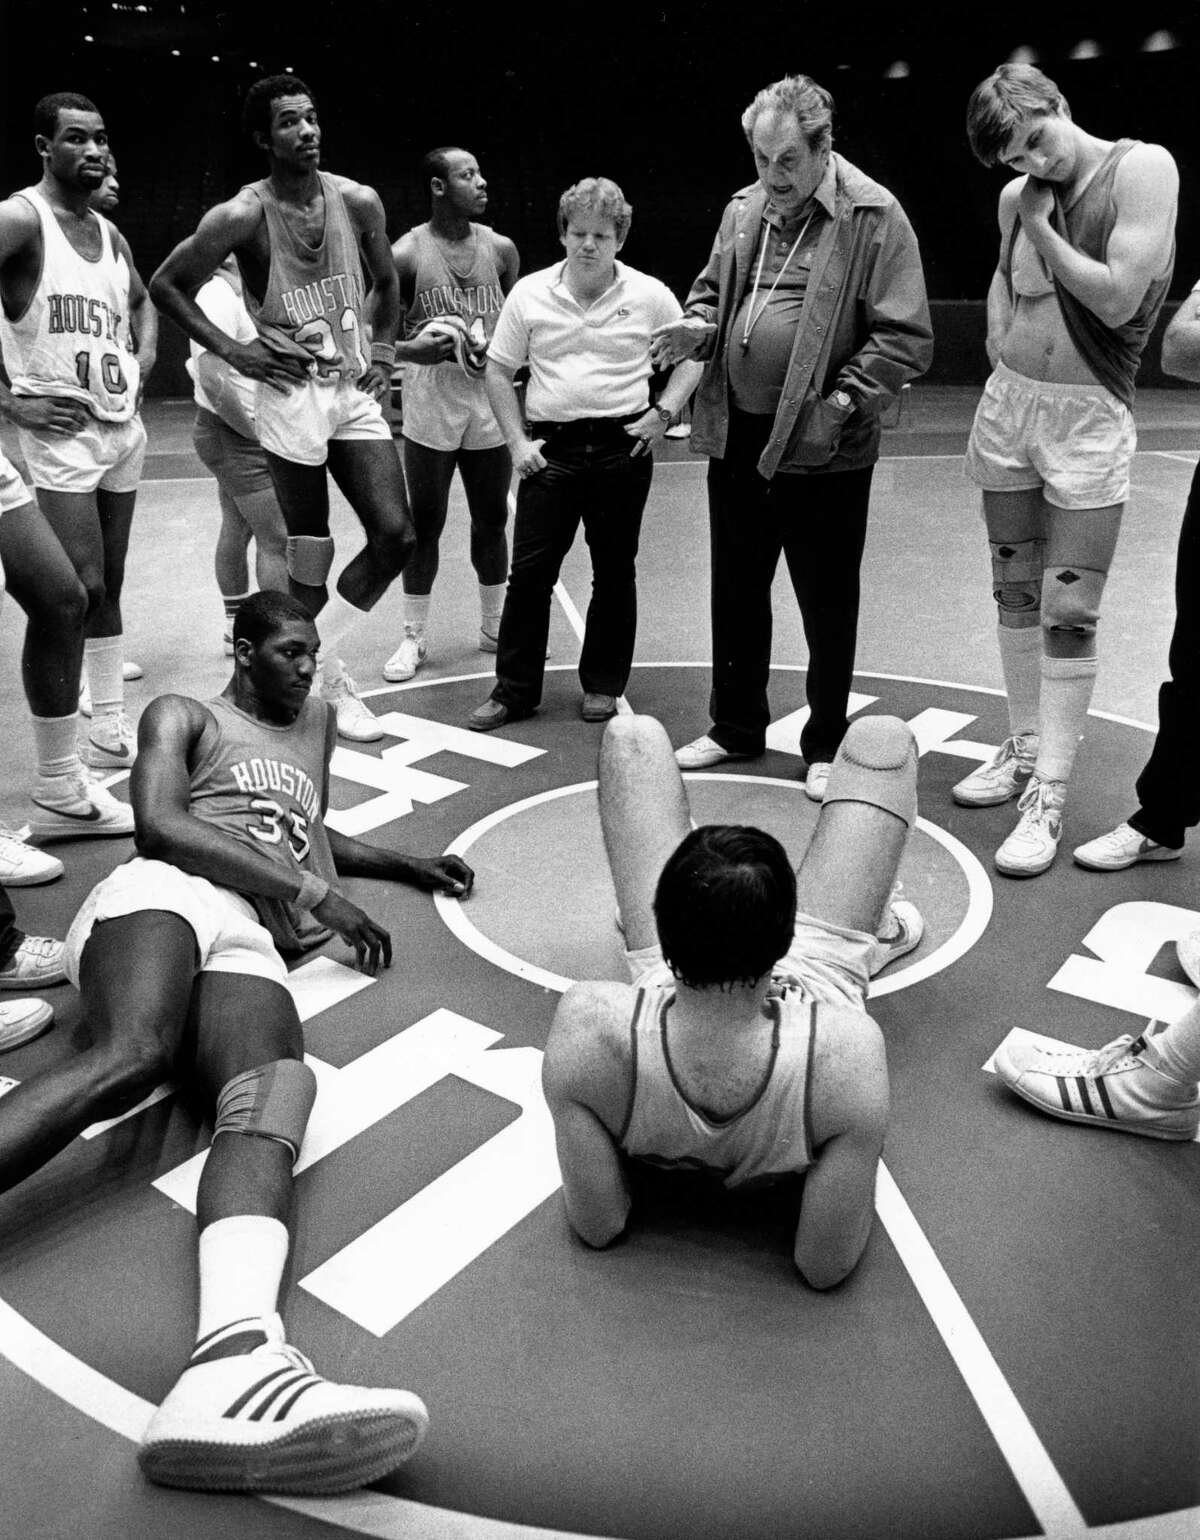 PHOTOS: Great moments in Hofheinz Pavilion history 03/28/1983 - Houston's top-ranked Cougars listen to Coach Guy Lewis during Monday's practice at Hofheinz Pavilion. The Cougars include (CW from lower left): Akeem Olajuwon, Derek Giles, Clyde Drexler, Alvin Franklin, manager Jimmy Duffer, coach Lewis, Reid Gettys and David Rose. Lewis' Coogs are preparing for Saturday's game against Louisville in the NCAA semifinals at Albuquerque, NM. Browse through the photos to see some of the great moments in the history of the University of Houston's arena.